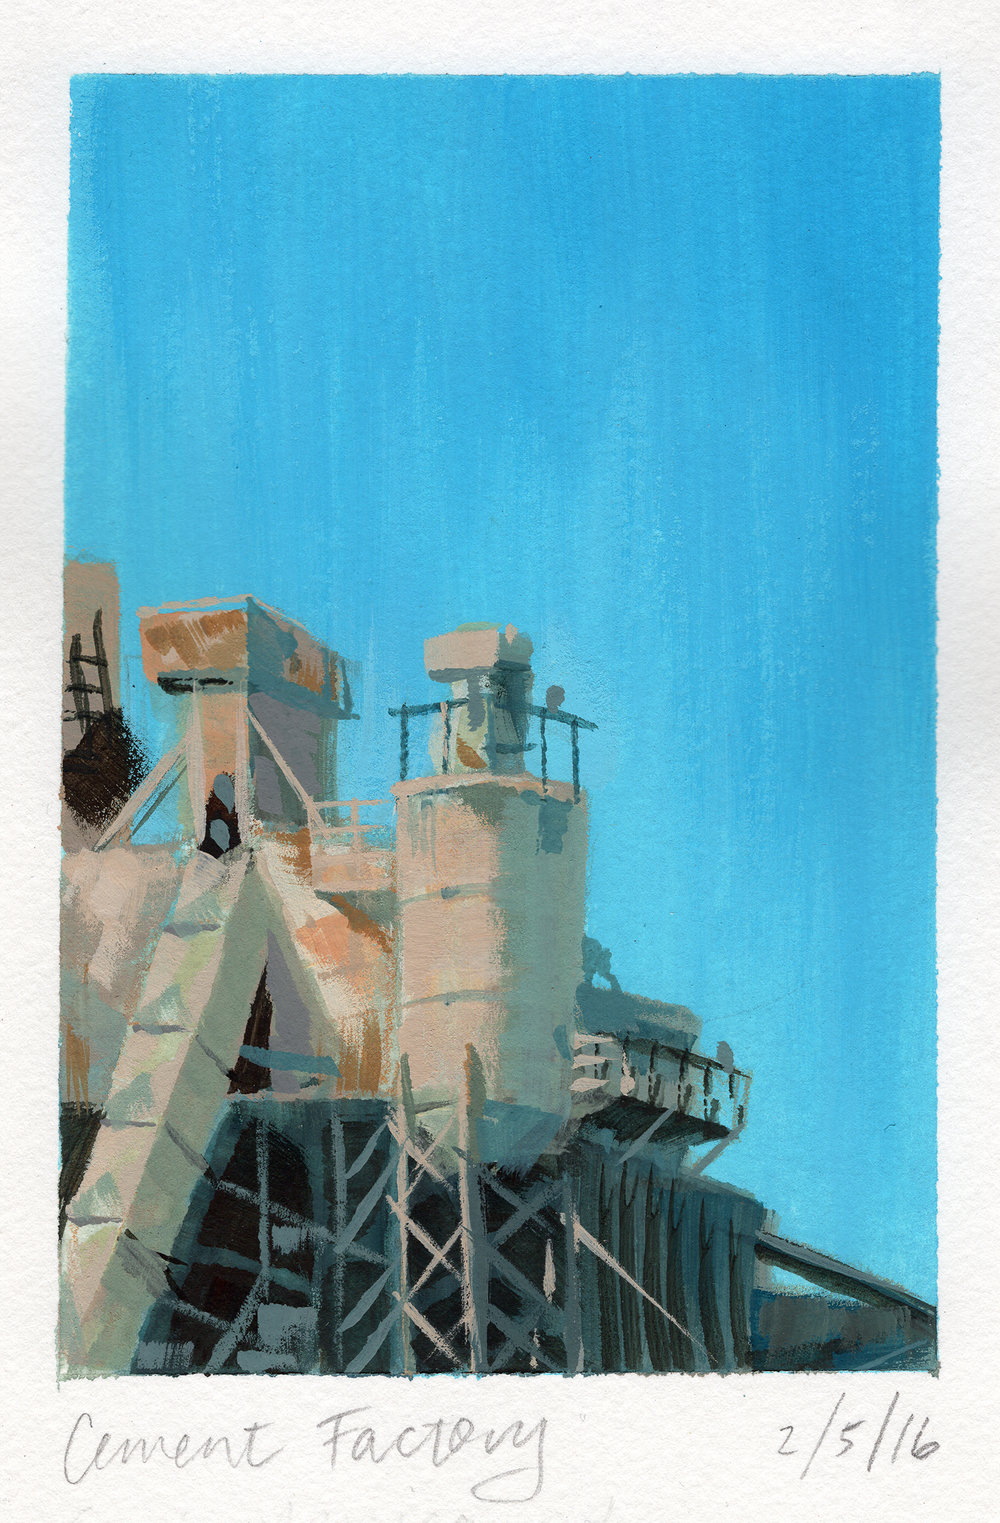 Santa Monica Cement Factory_4x6.jpg